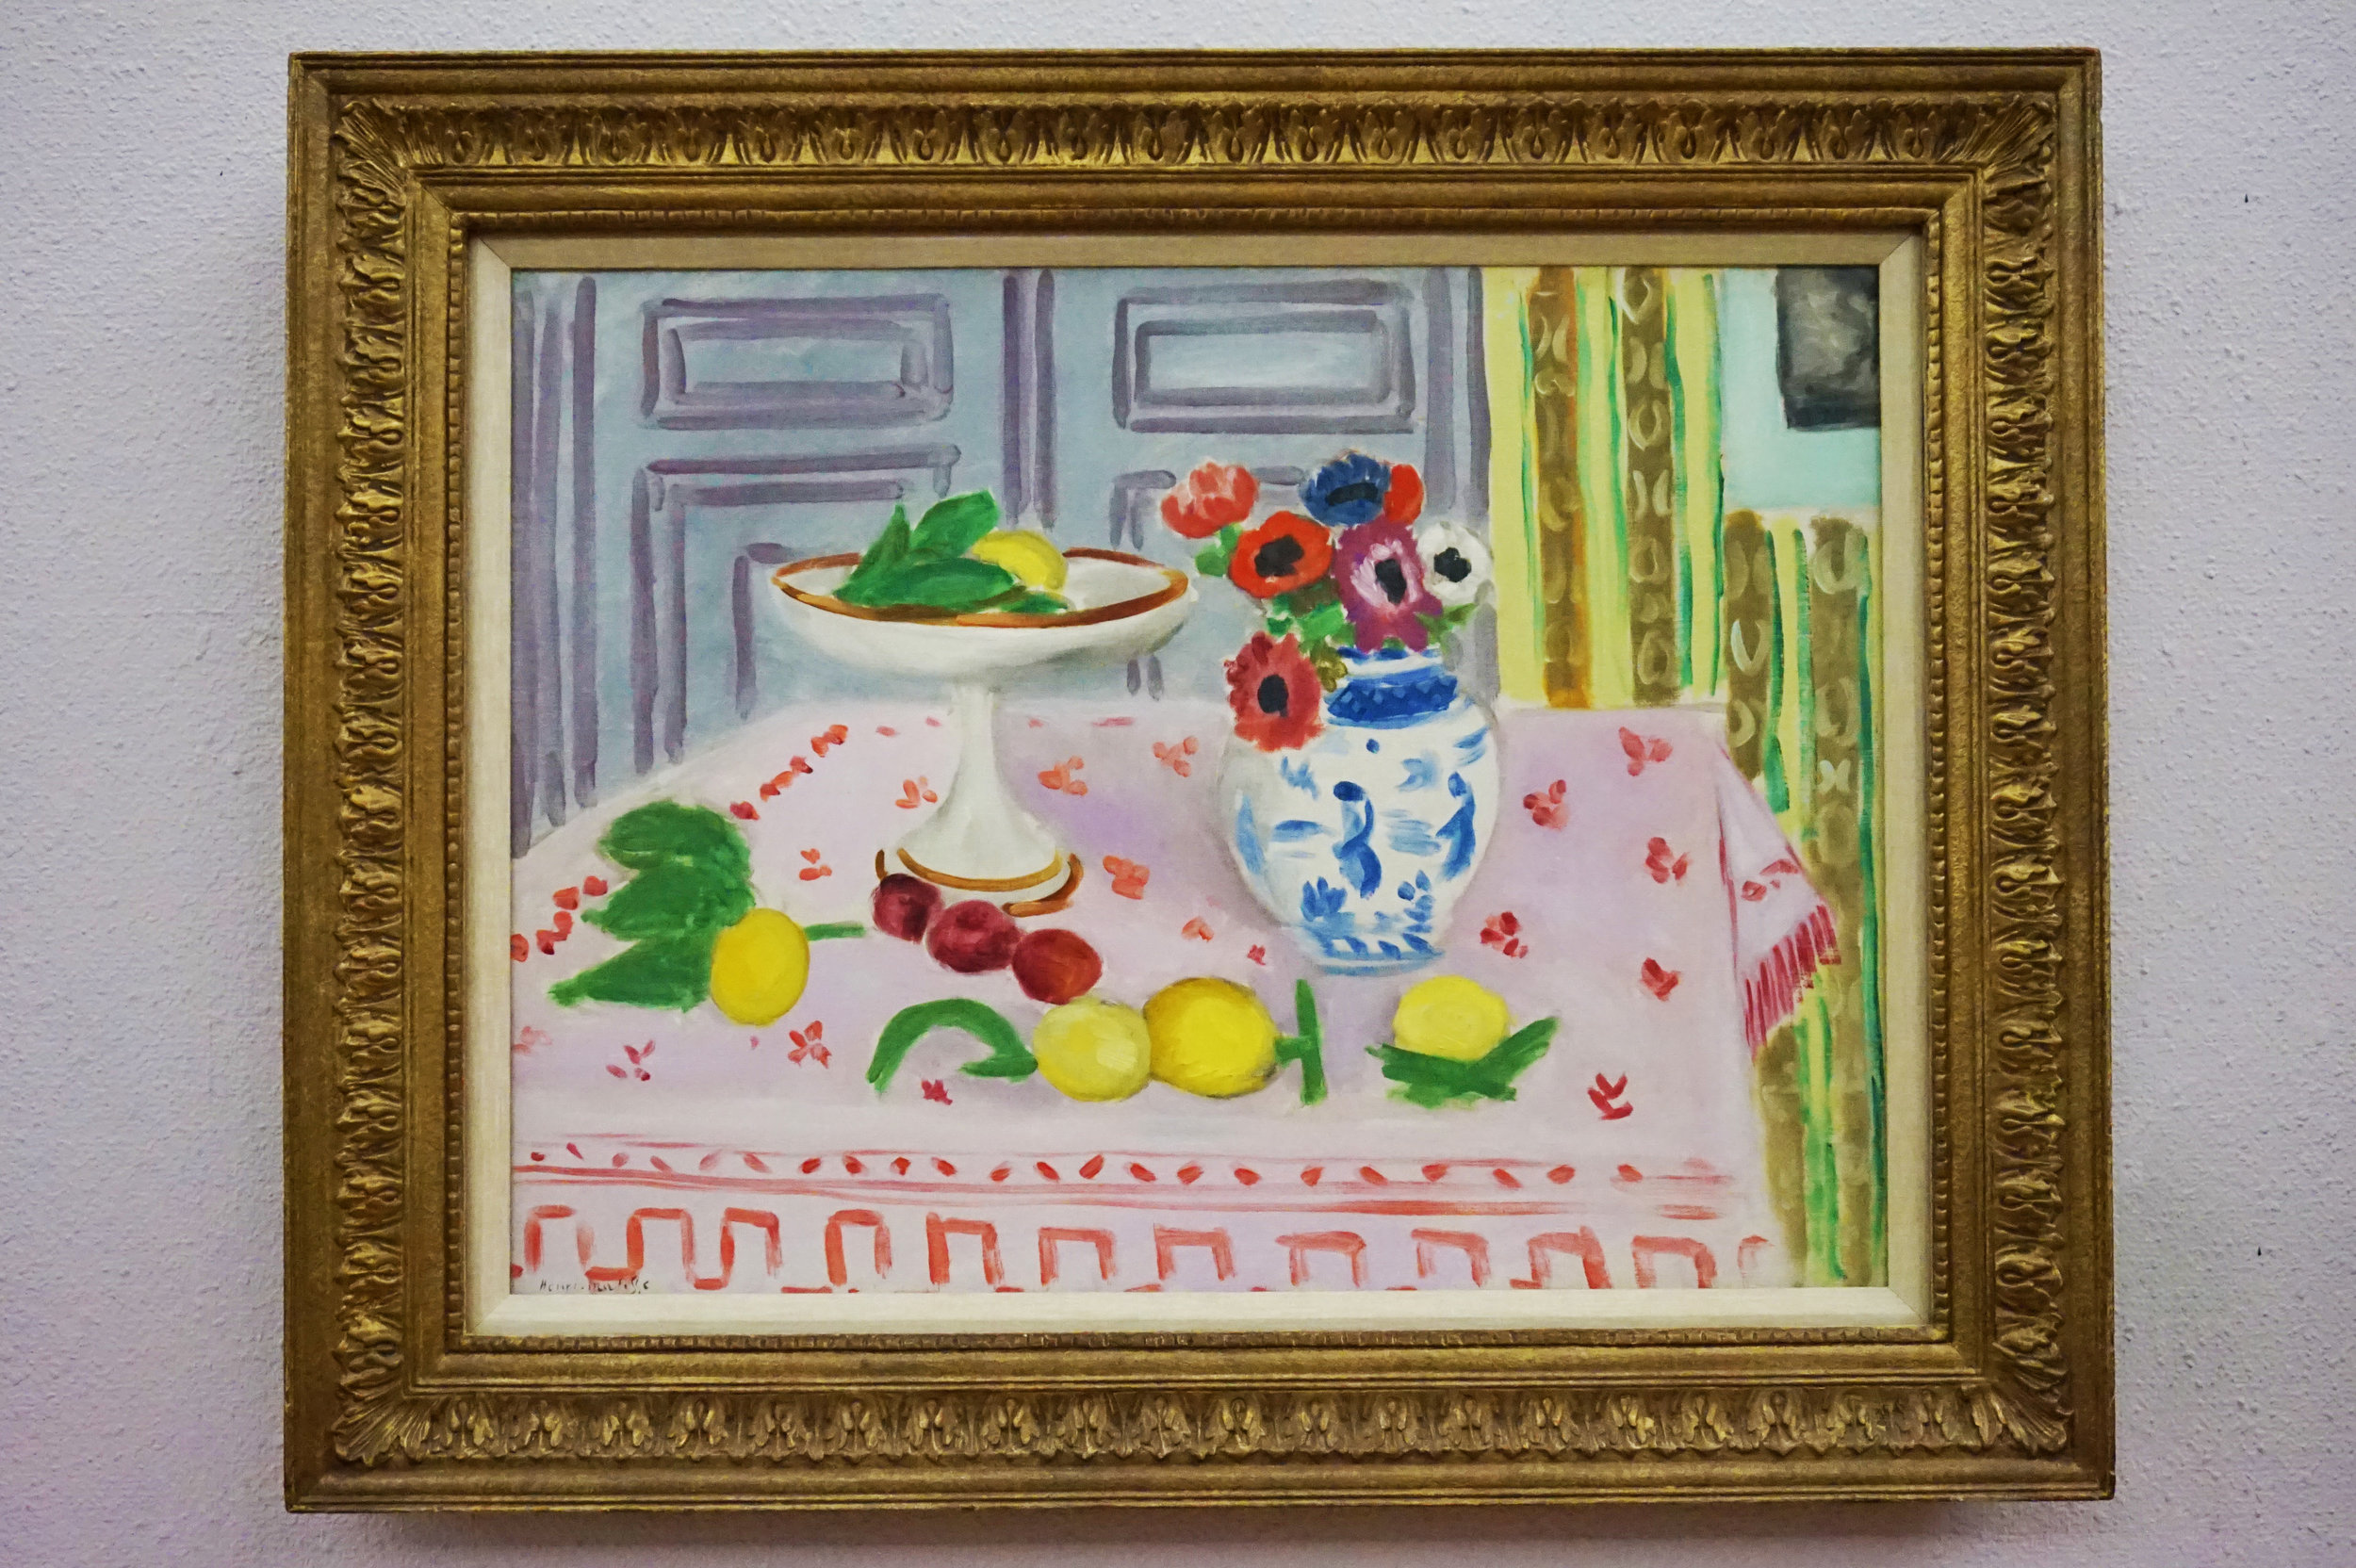 """""""Matisse believed the purpose of painting was to communicate joy and happiness. He wanted the viewer to notice what was around them, and by contrasting shapes and colors, he brings a fresh viewpoint to everyday things."""""""